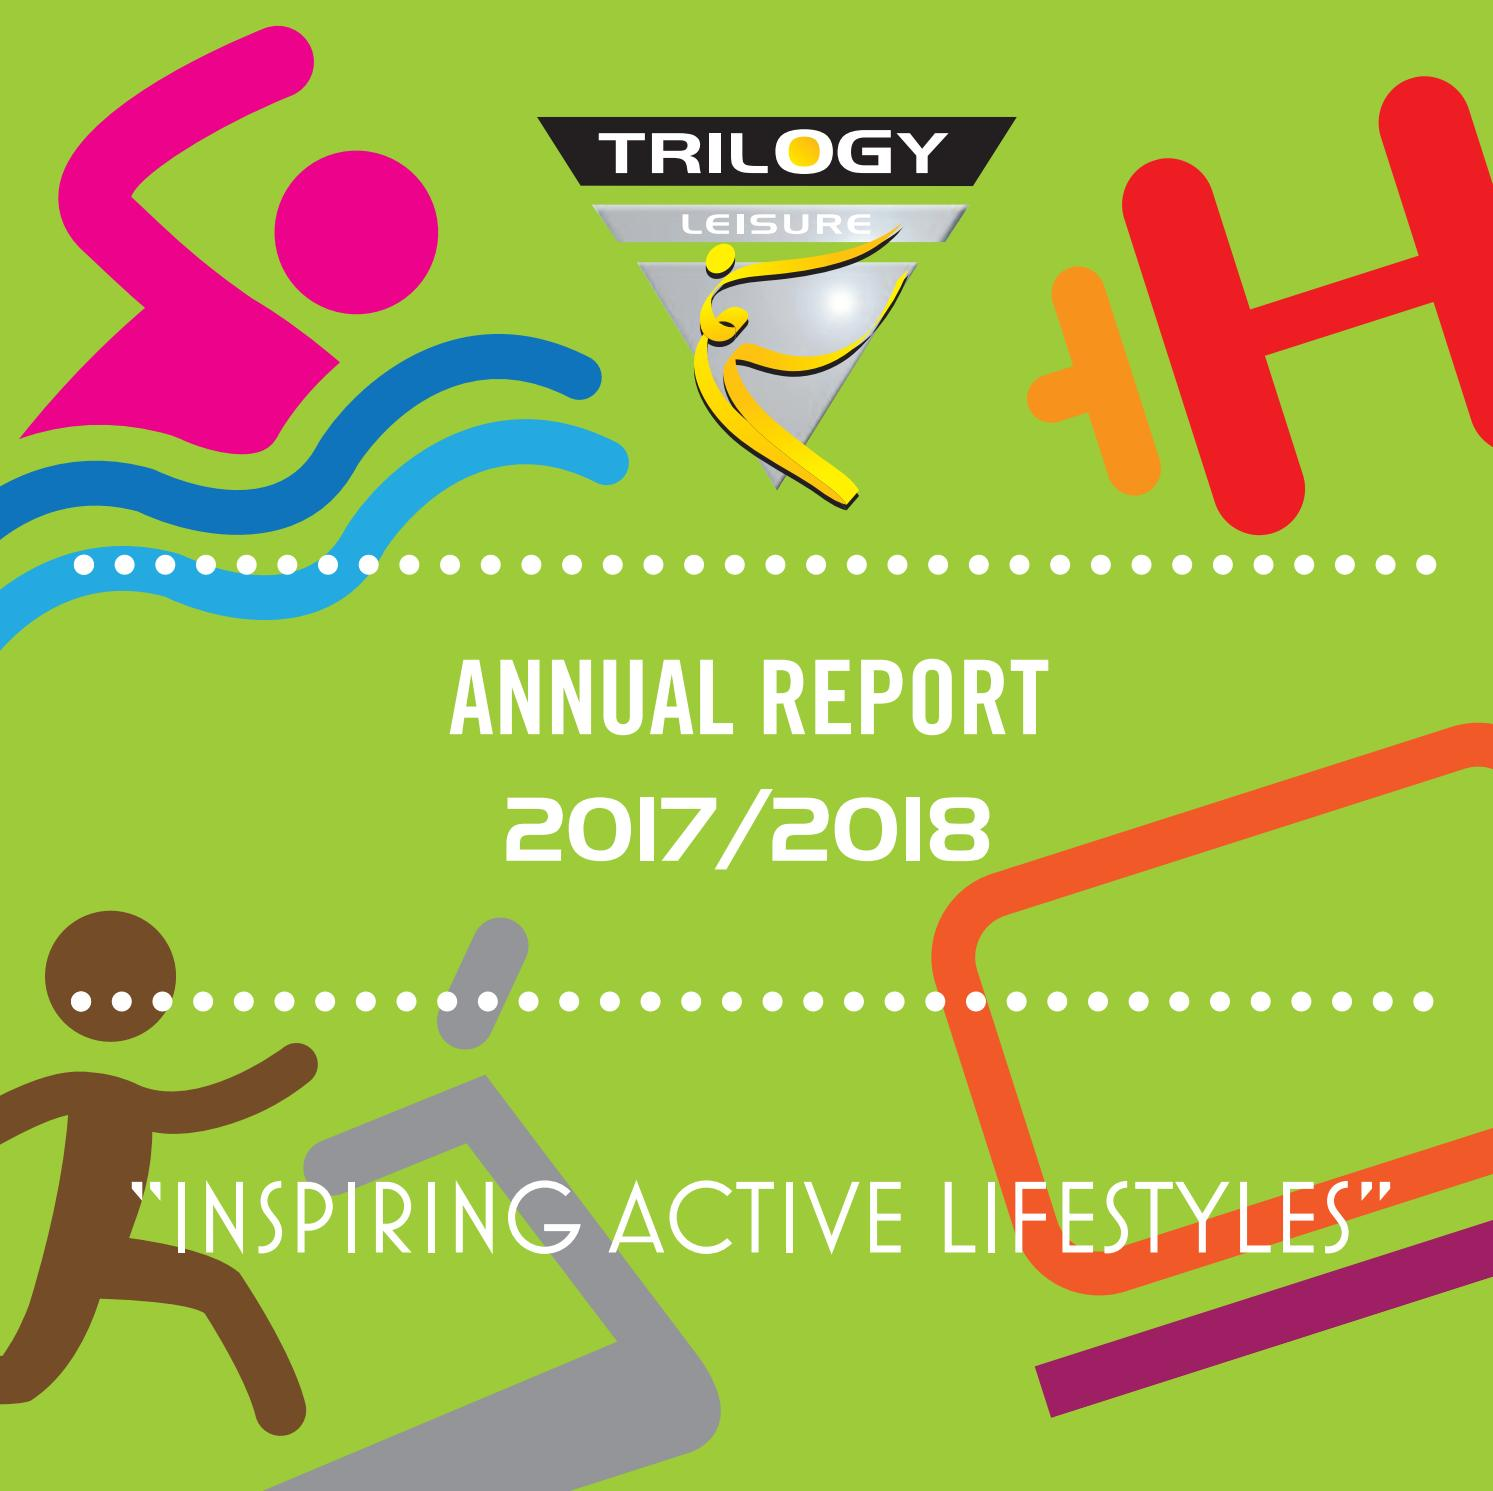 Northampton Leisure Trust Annual Report 2017/2018 by